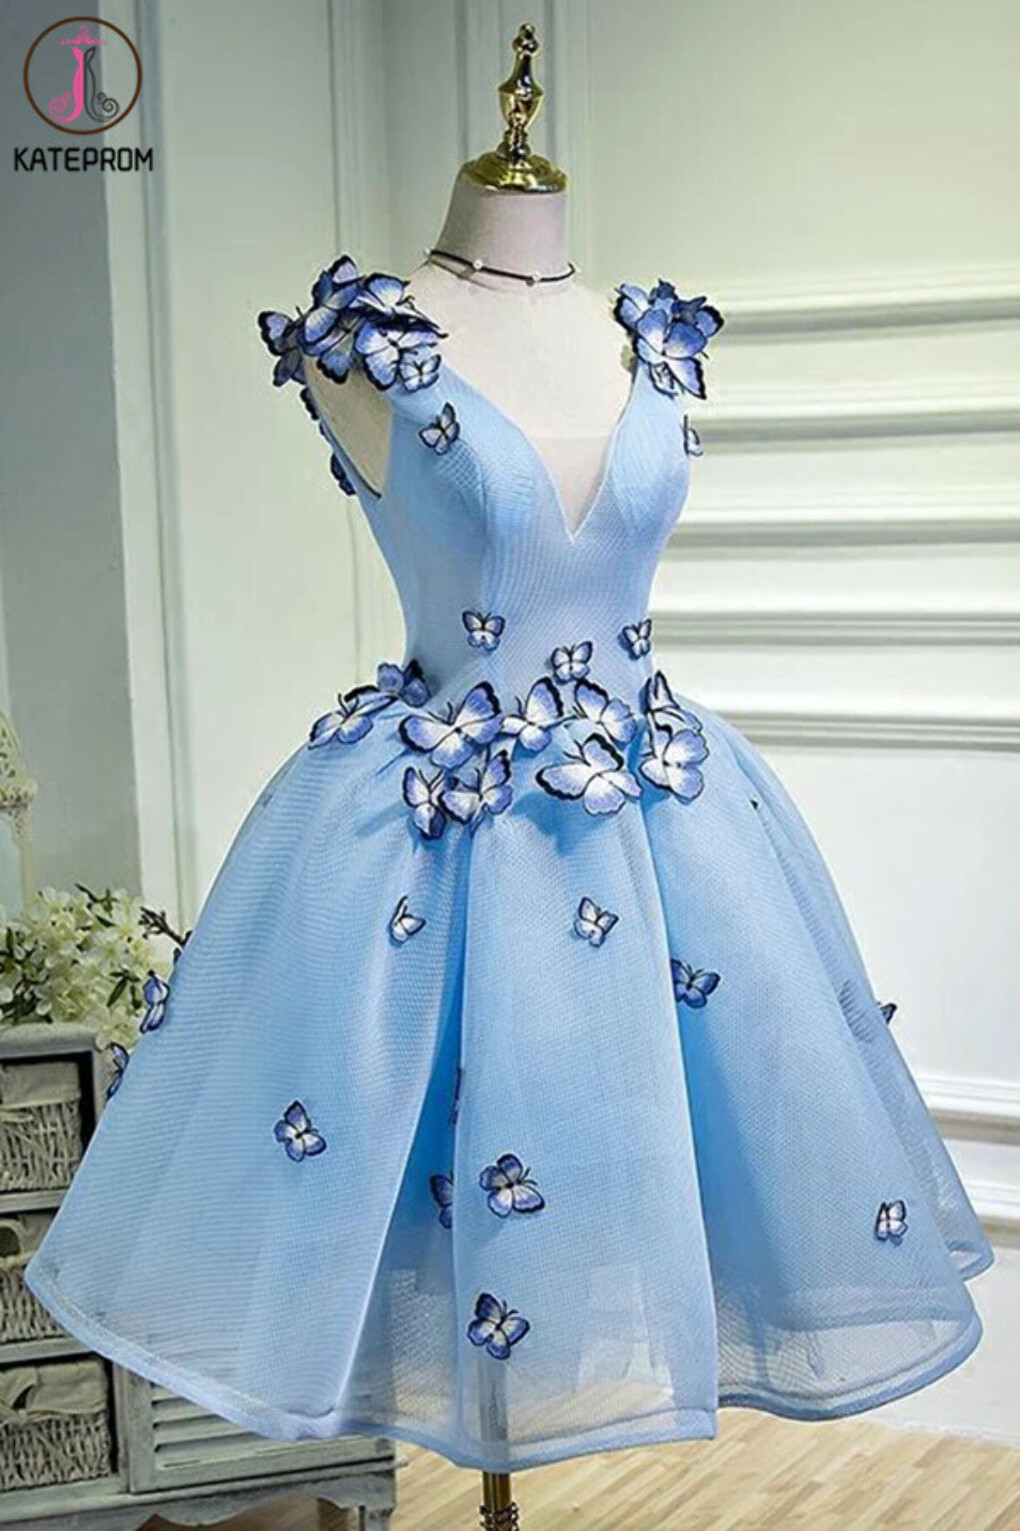 Kateprom Sky Blue A Line Flowers V Neck Sleeveless Junior Prom Dress, Homecoming Dress KPH0535